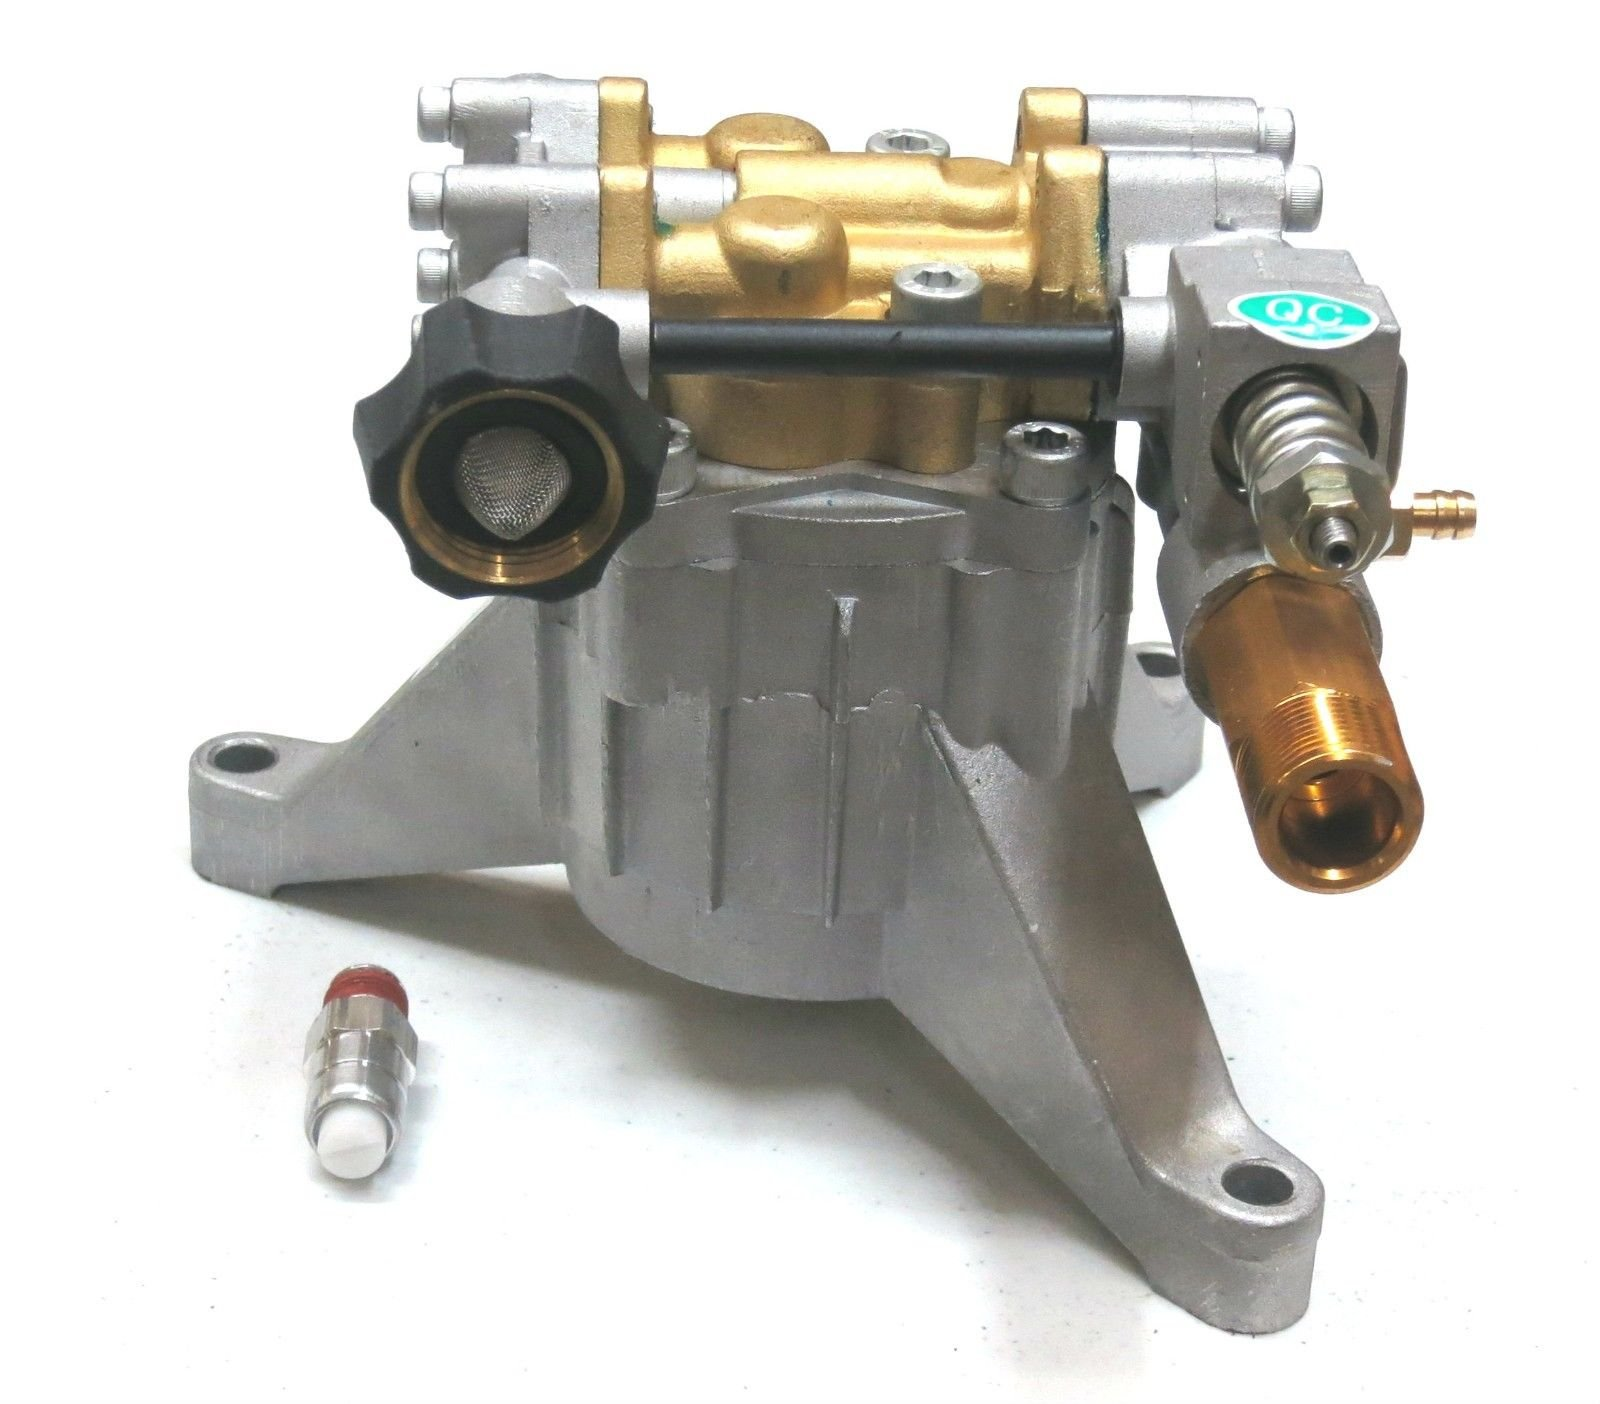 The ROP Shop 3100 PSI Upgraded Power Pressure Washer Water Pump Sears Craftsman 580.768350